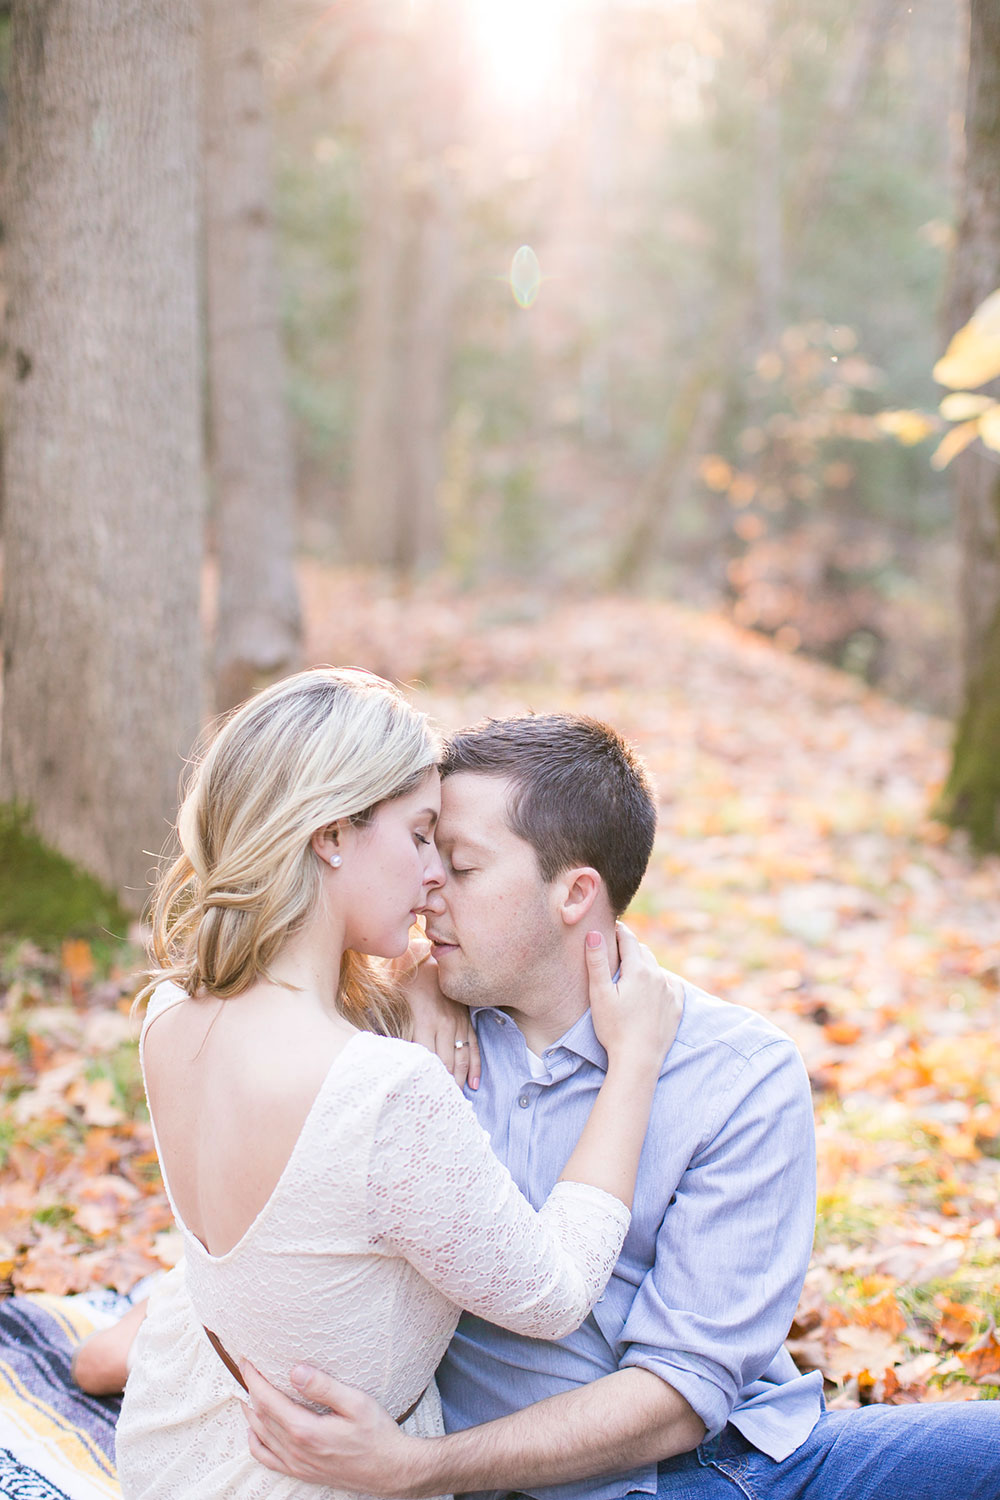 Albion-Hills-Conservation-Park-engagement-session-caledon-photo-by-philosophy-studios-eva-derrick-photography-008.jpg